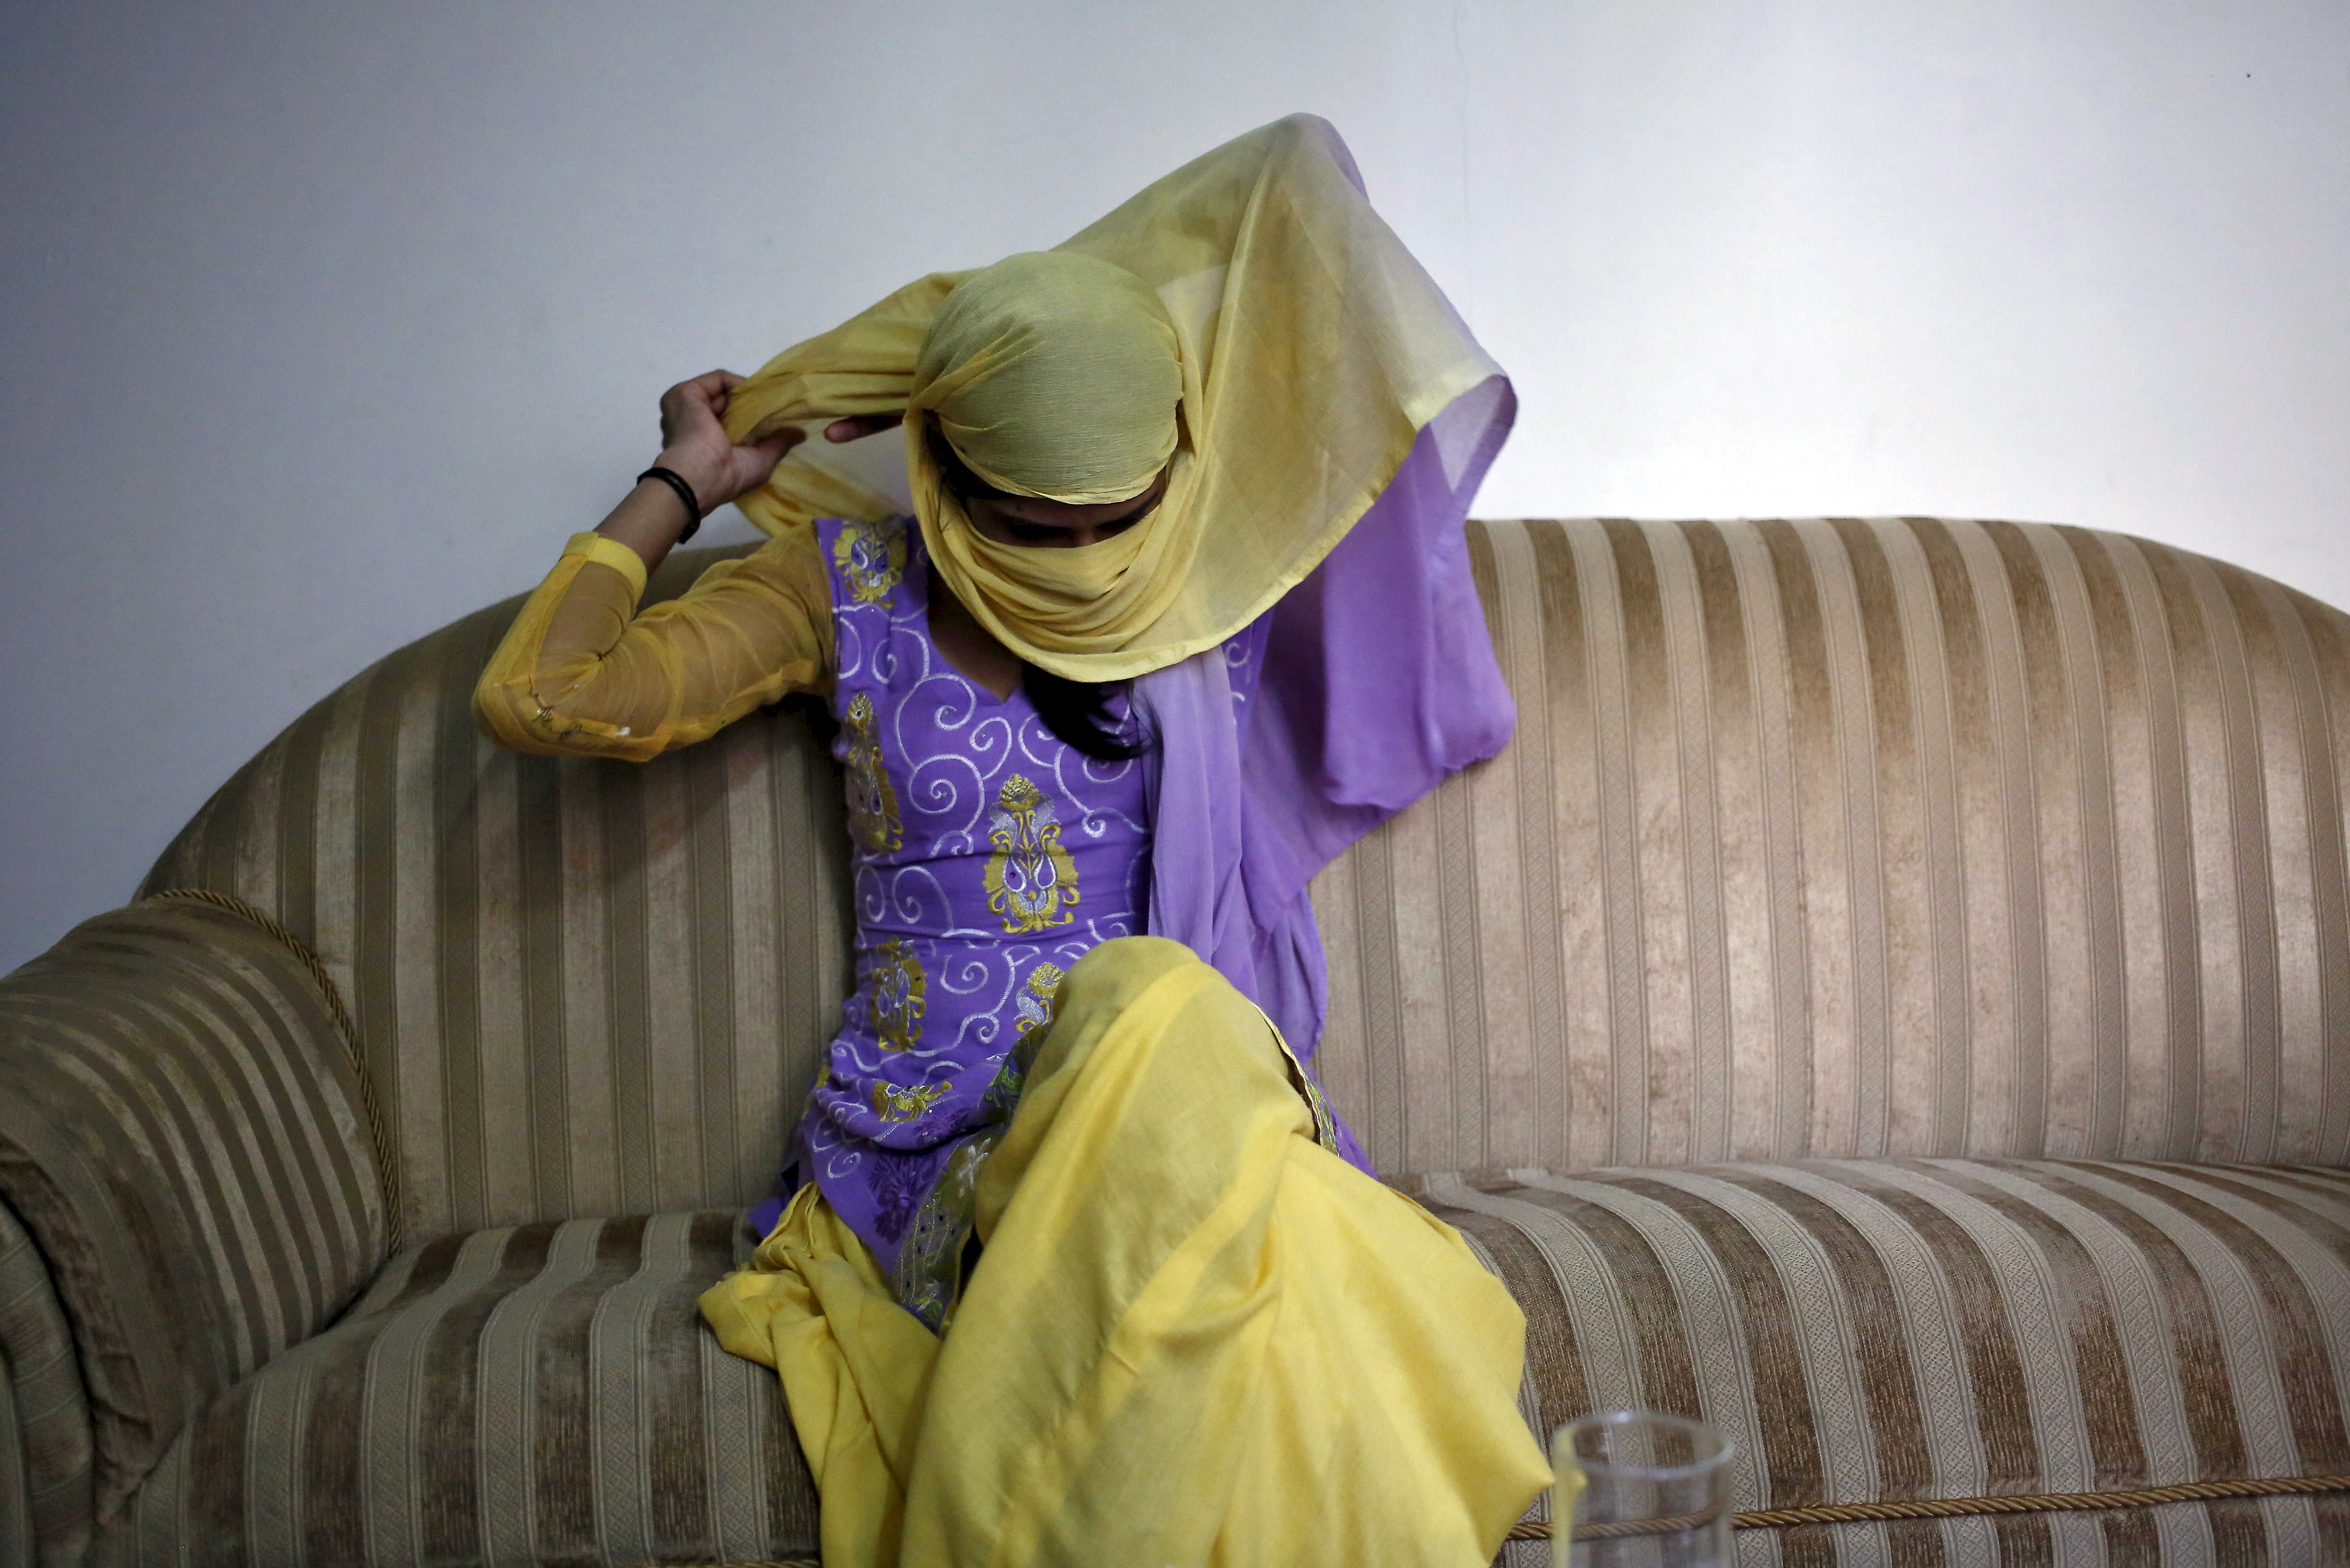 Meenakshi Kumari, 23, one of the two sisters allegedly threatened with rape by a village council in the northern Indian state of Uttar Pradesh, adjusts her headgear as she sits inside her lawyer's chamber in New Delhi on Sept. 1, 2015